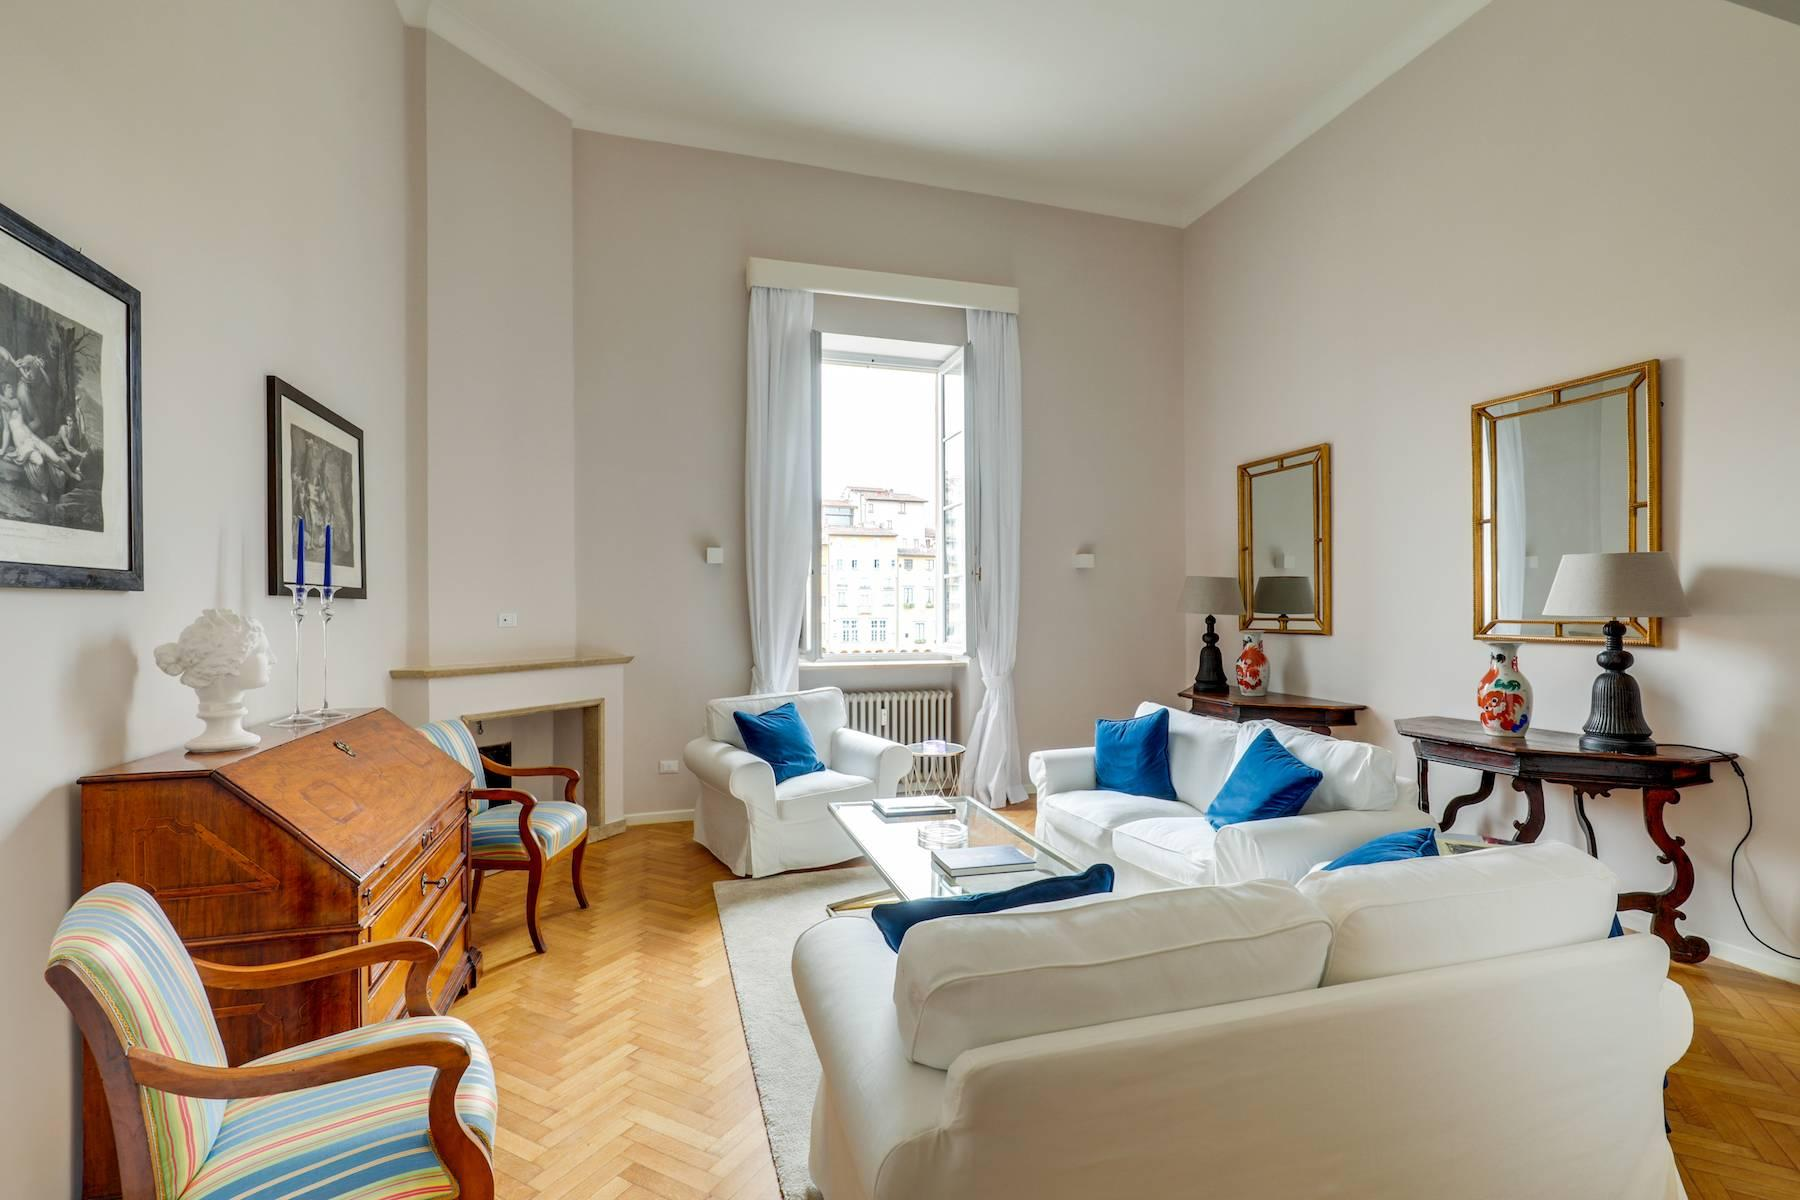 Beautifully renovated apartment overlooking Ponte Vecchio - 2